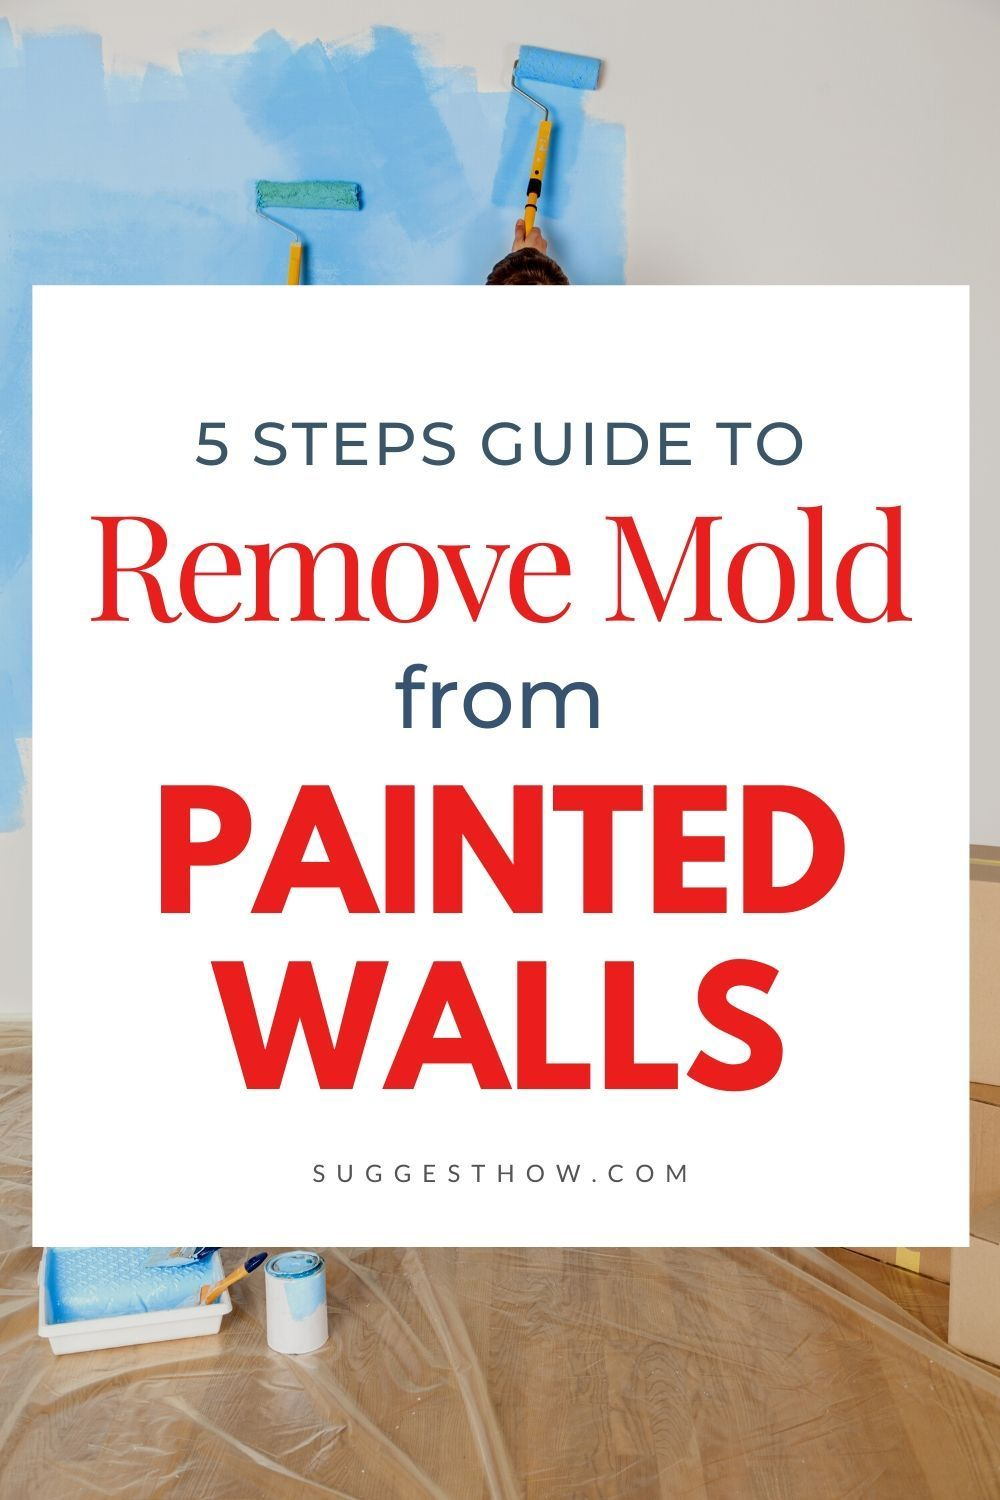 How to remove mold from painted walls easy and simple